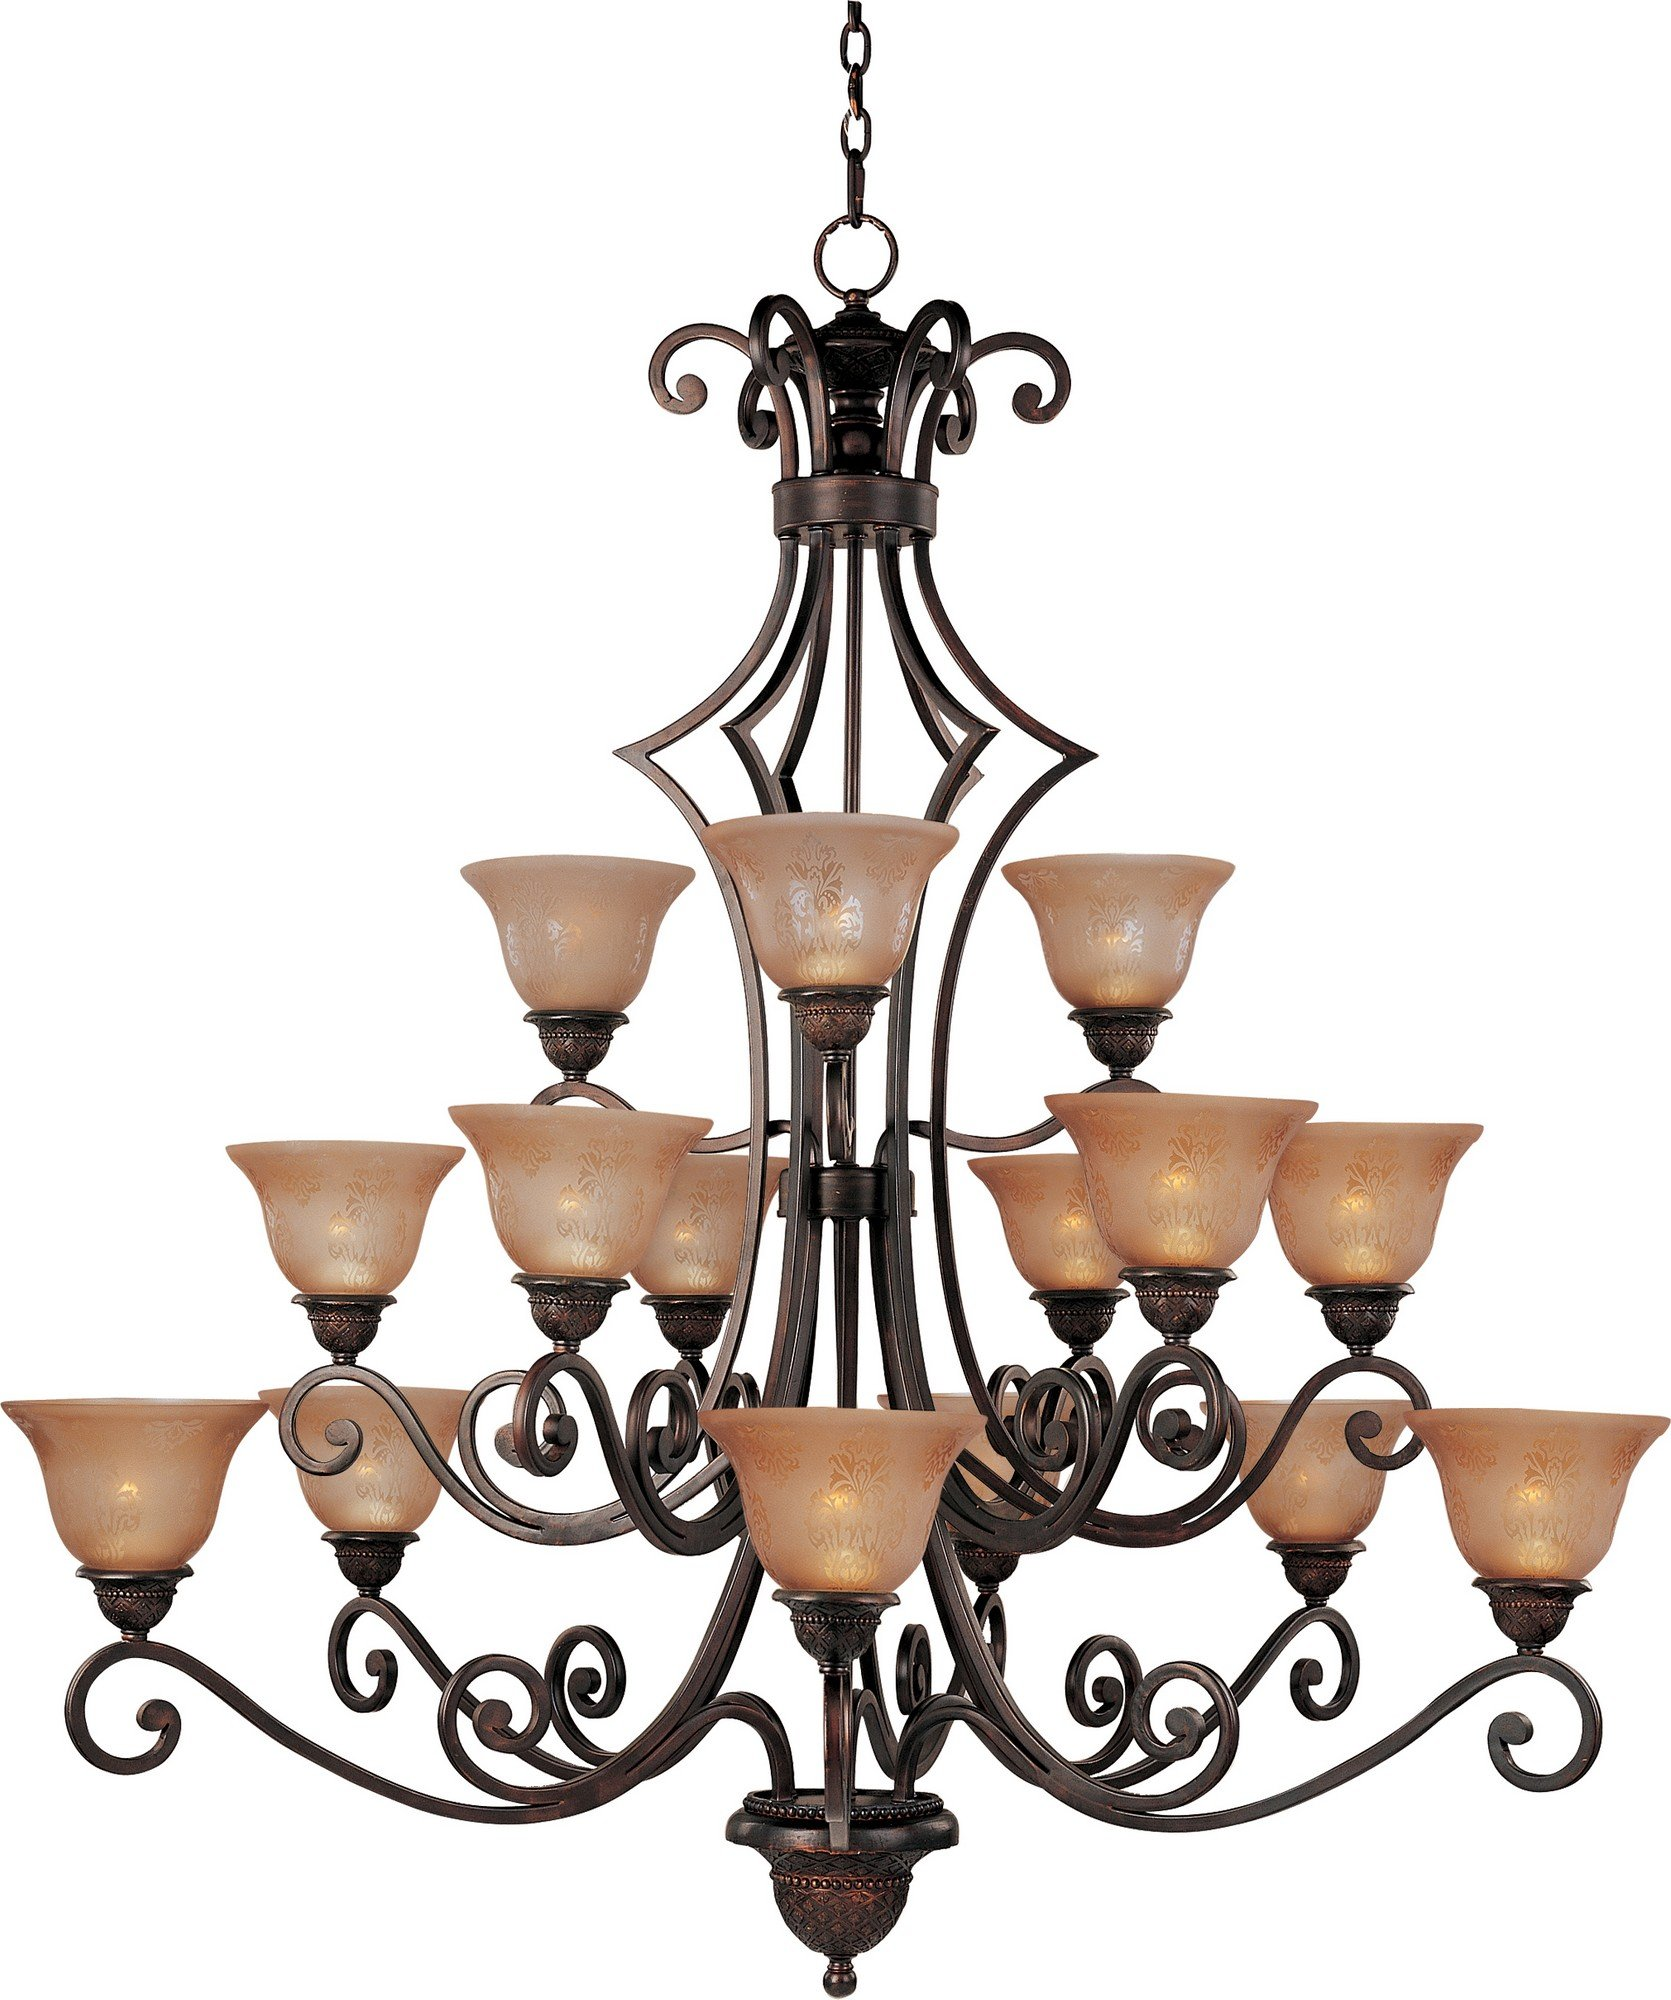 Maxim 11239SAOI Symphony 15-Light Chandelier, Oil Rubbed Bronze Finish, Screen Amber Glass, MB Incandescent Incandescent Bulb , 60W Max., Dry Safety Rating, Standard Dimmable, Opal Glass Shade Material, Rated Lumens